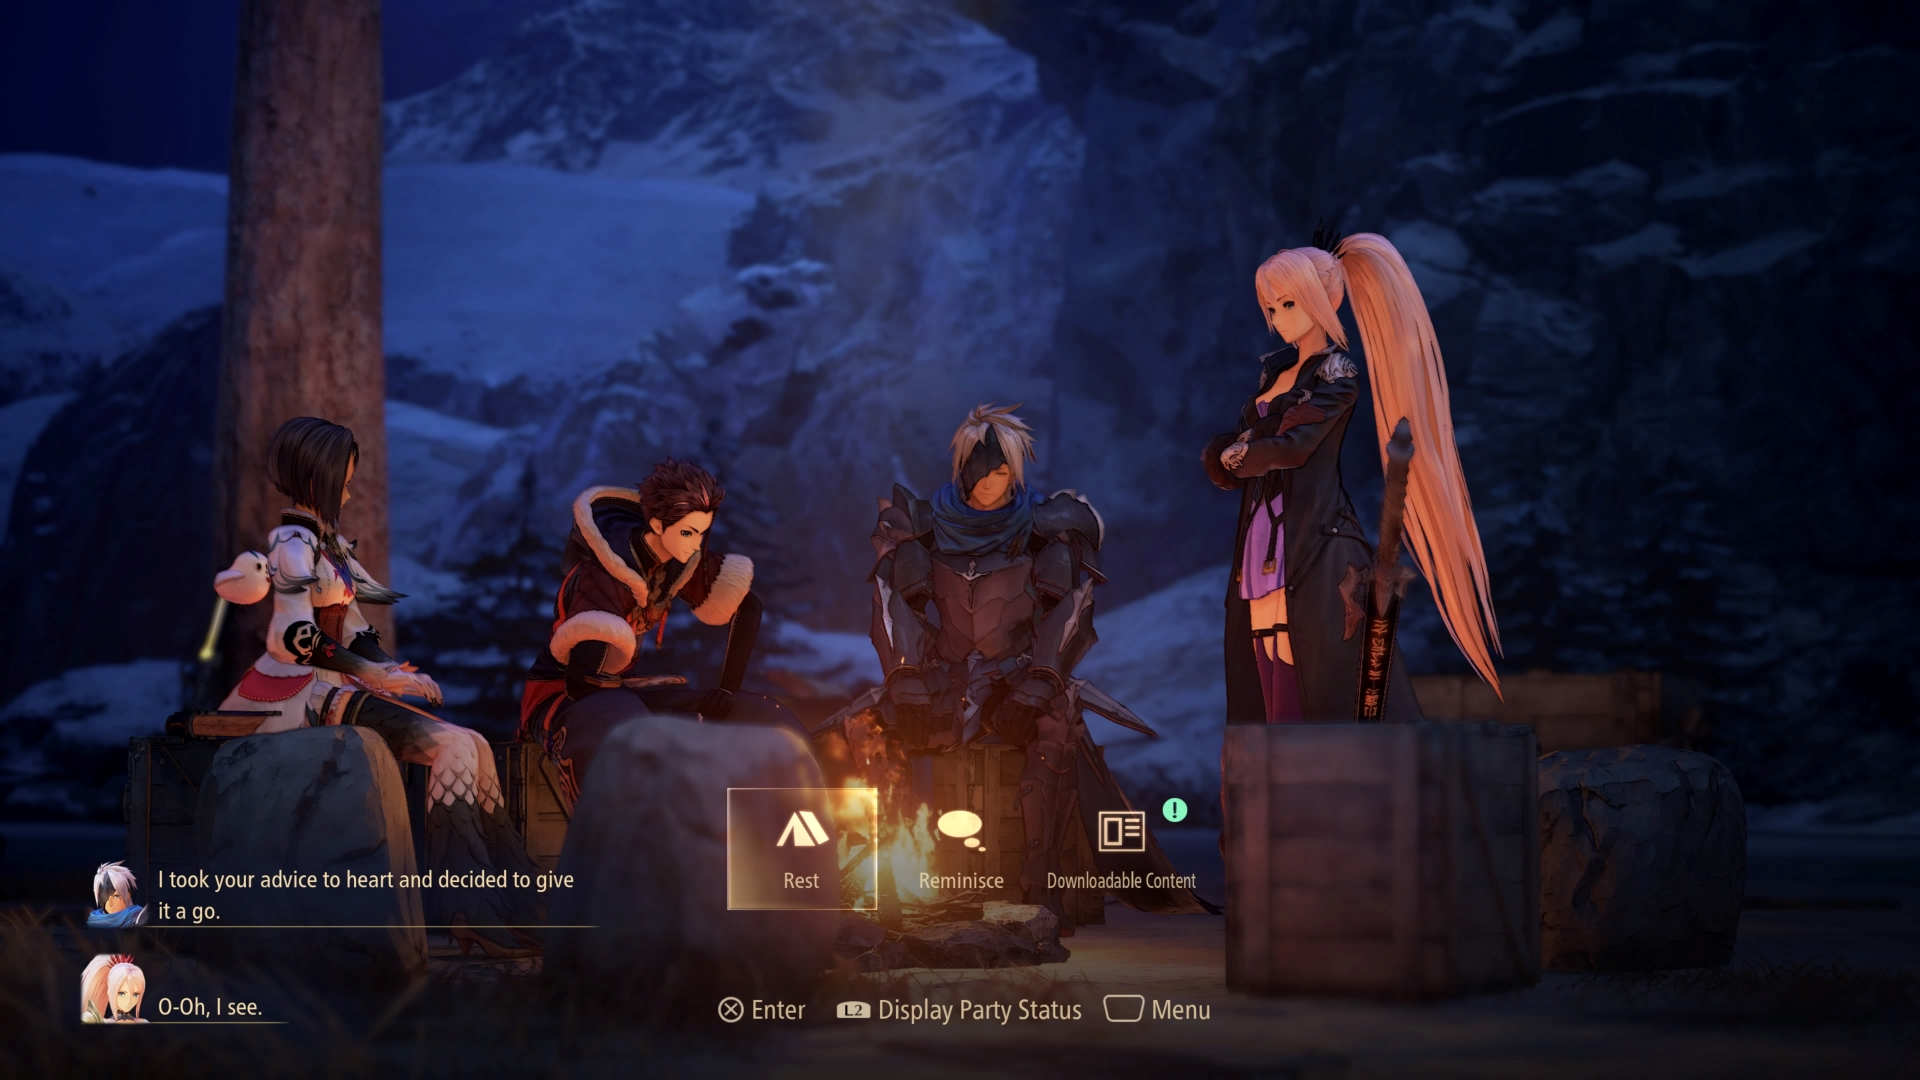 tales of arise features